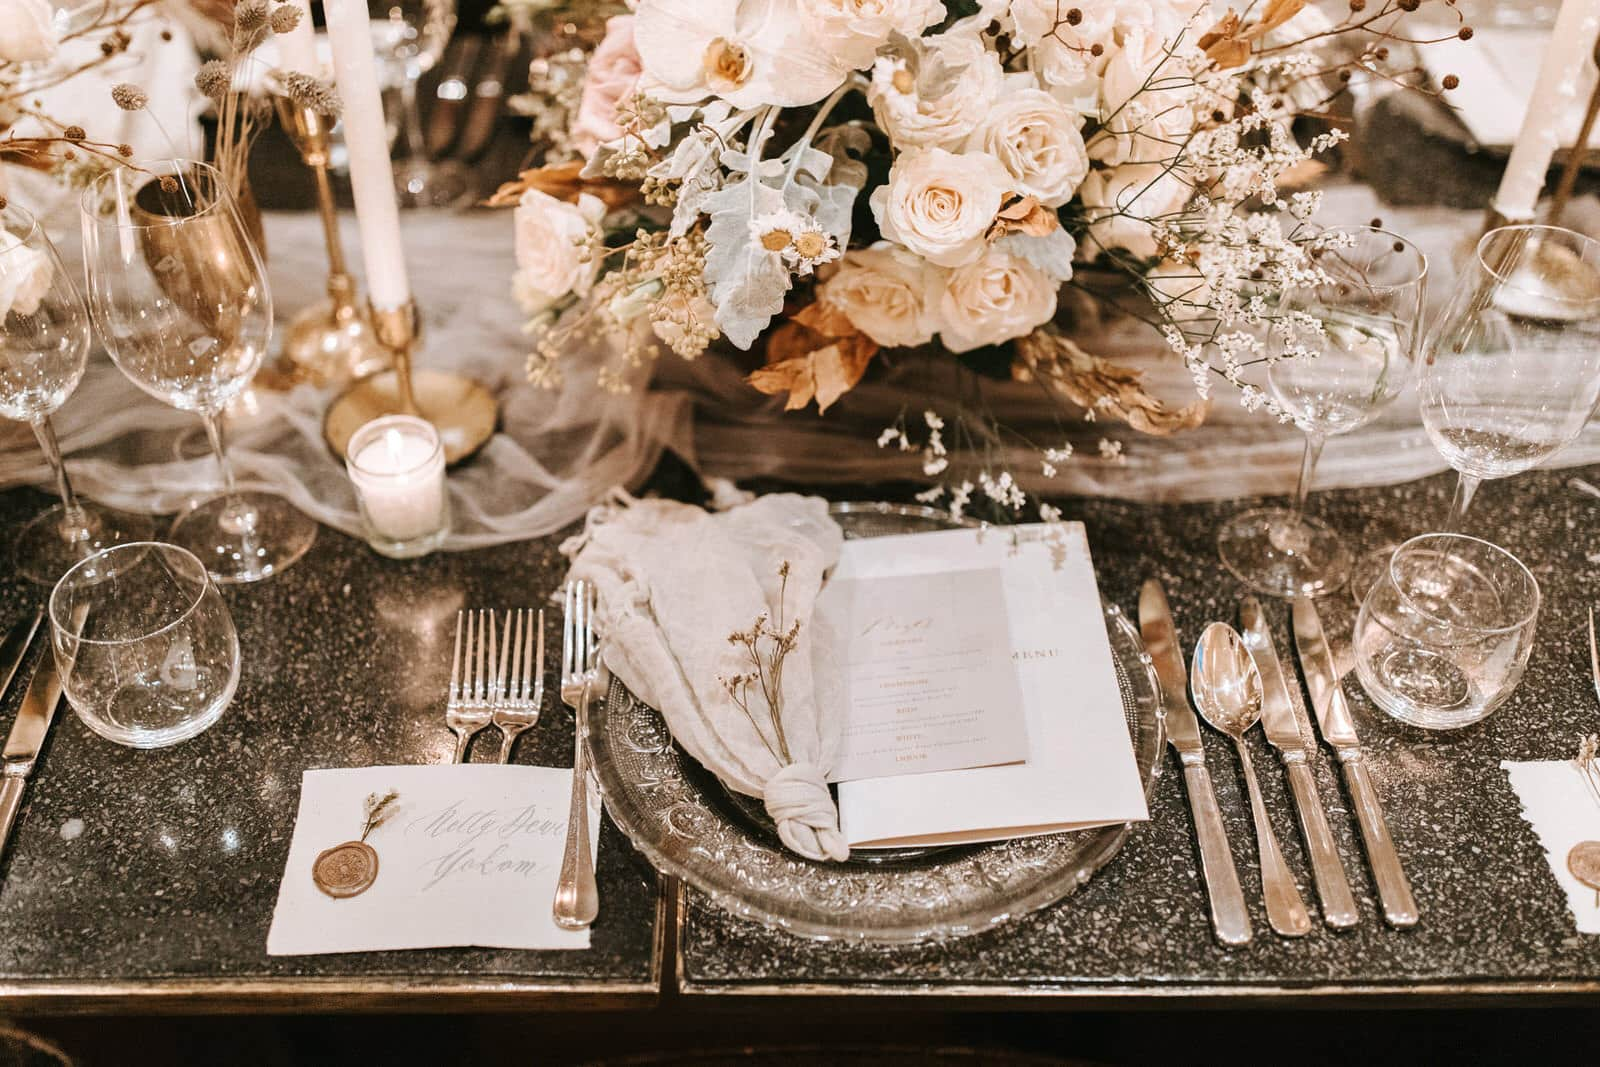 This closeup shows the place setting of the wedding.